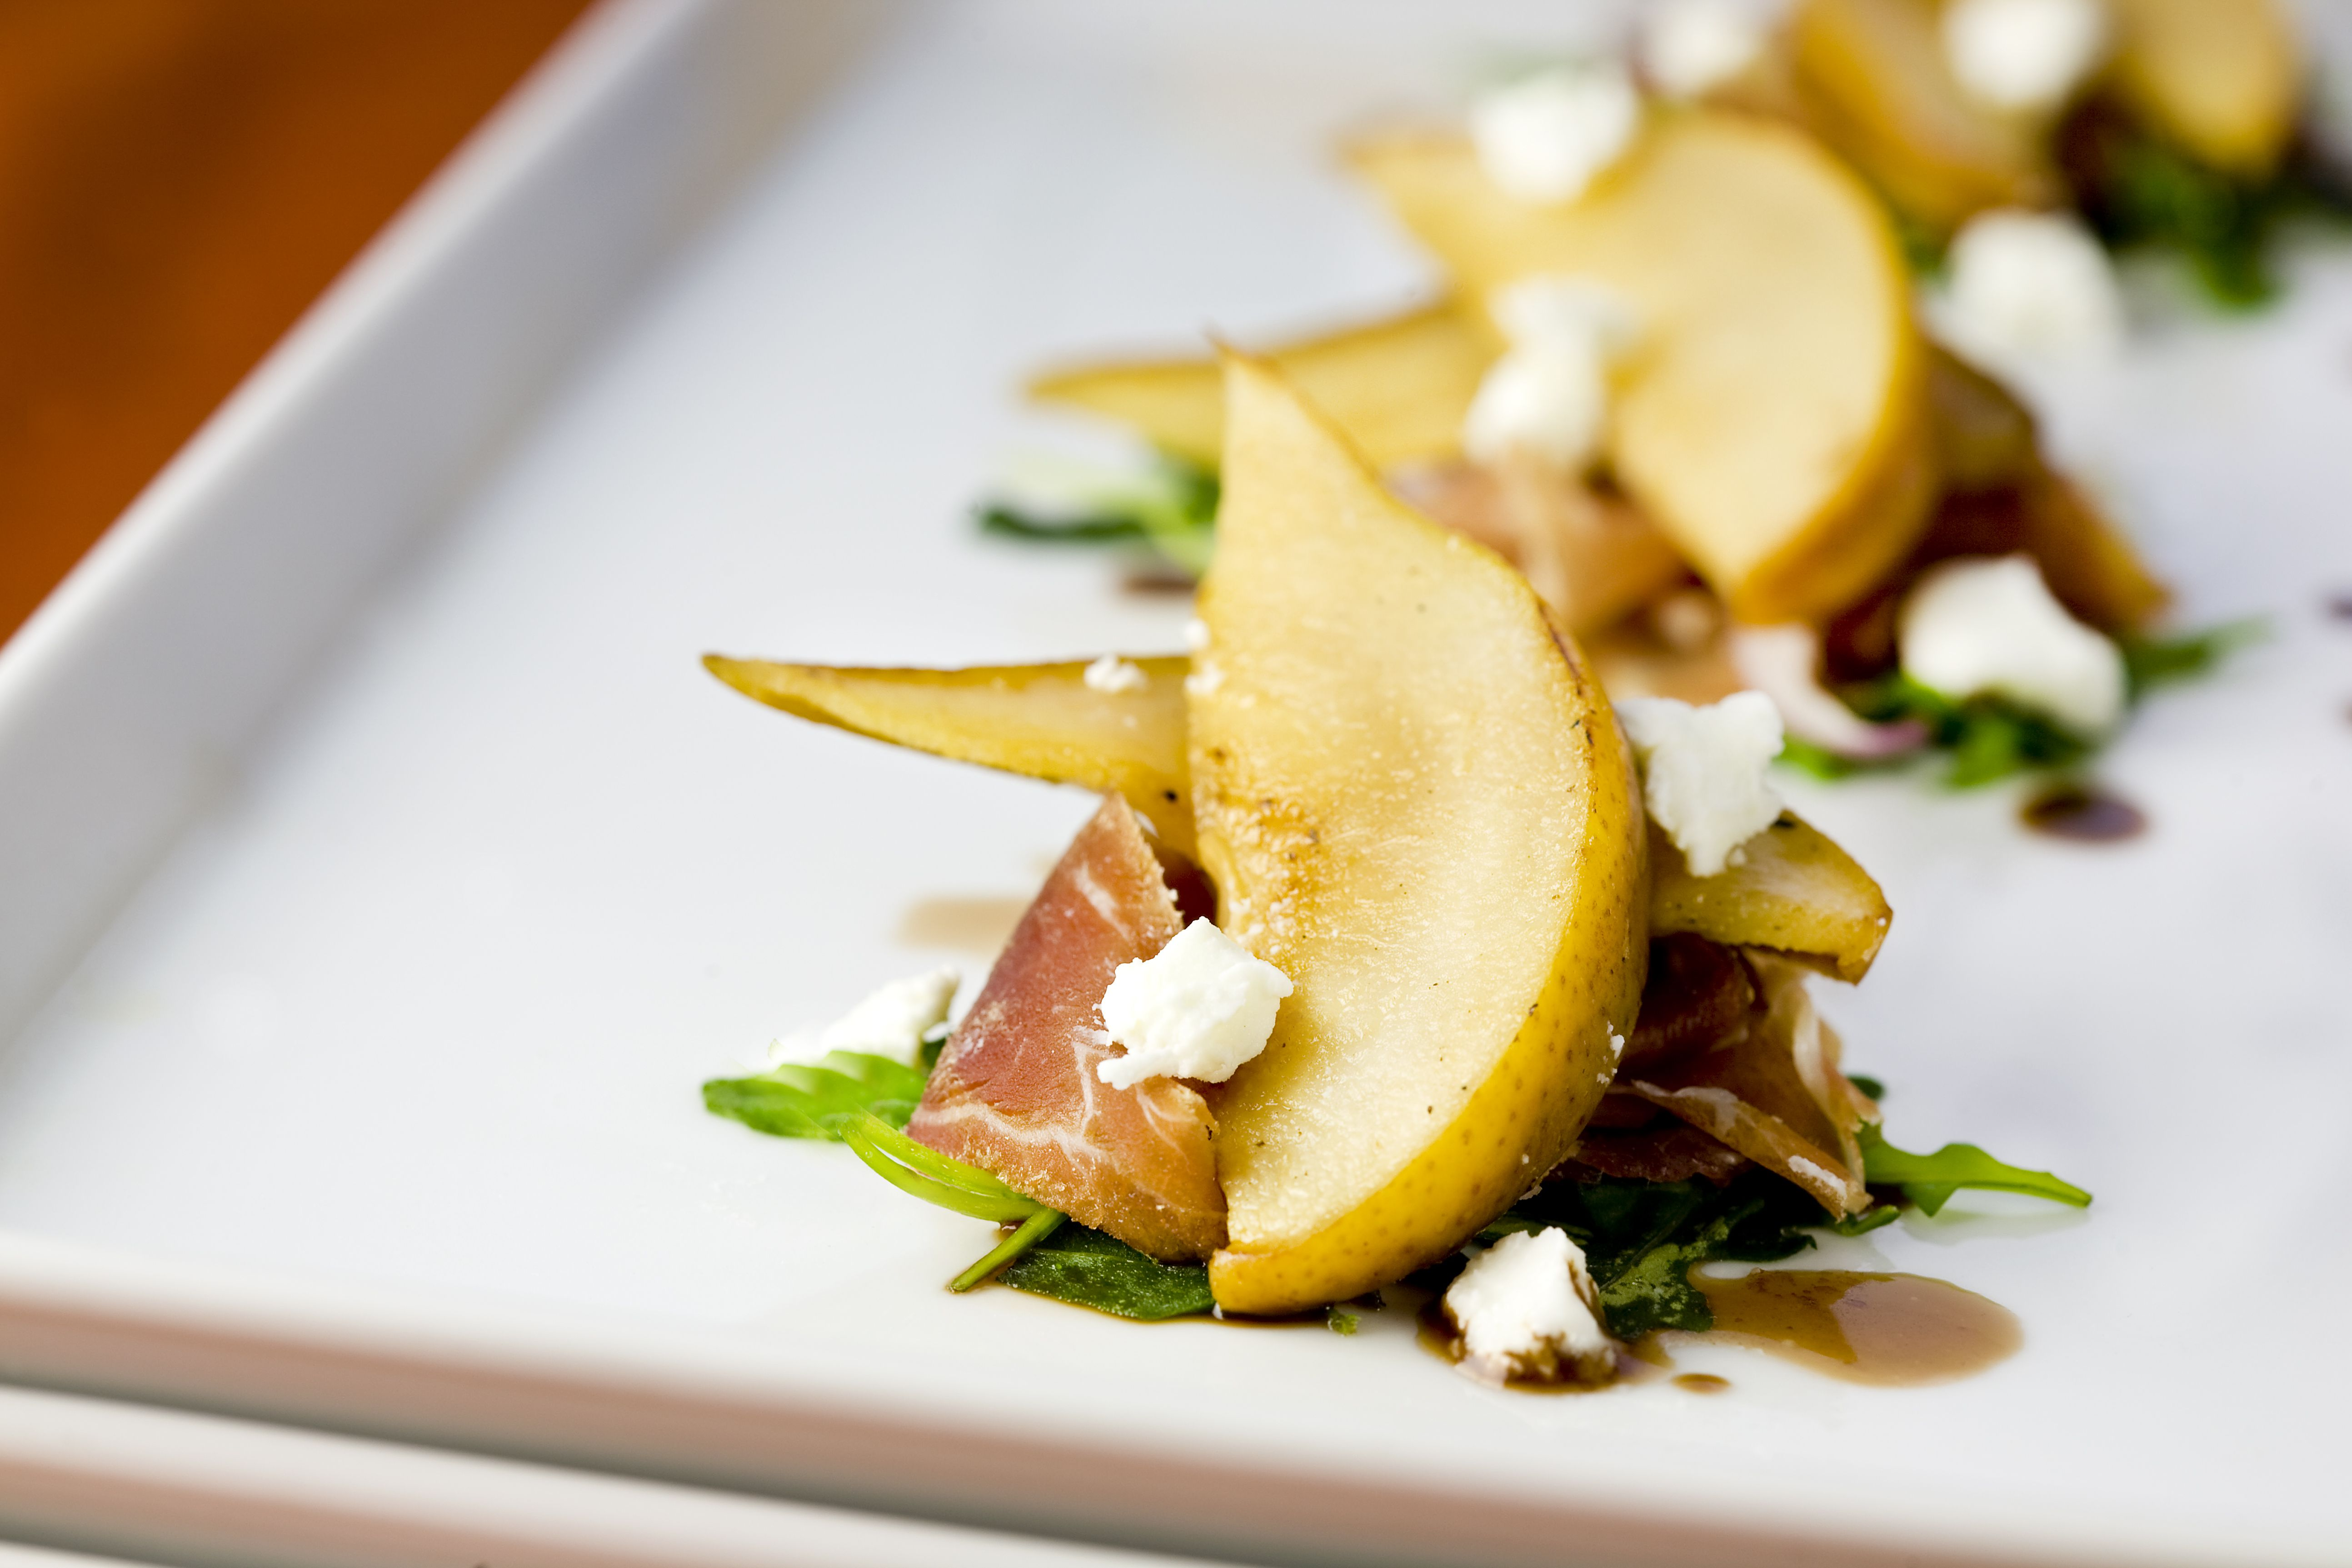 Prosciutto-wrapped pears with balsamic drizzle